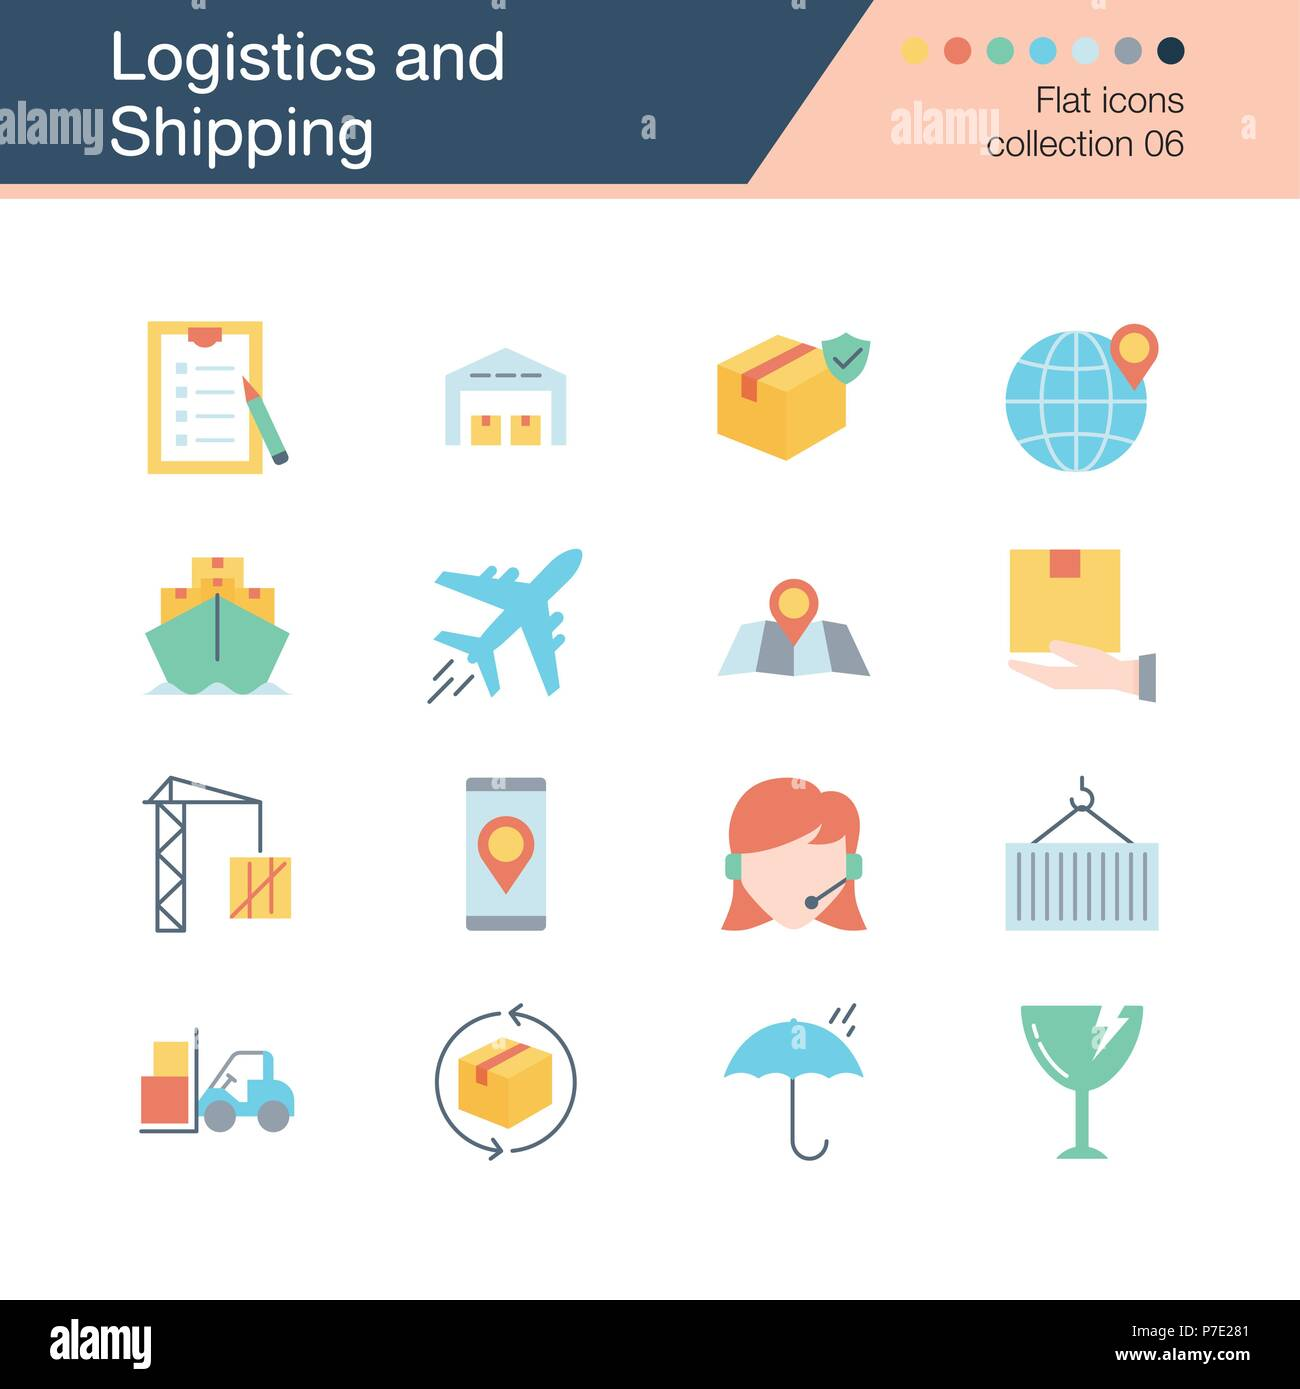 Logistics and Shipping icons. Flat design collection 6. For presentation, graphic design, mobile application, web design, infographics. Vector illustr - Stock Image